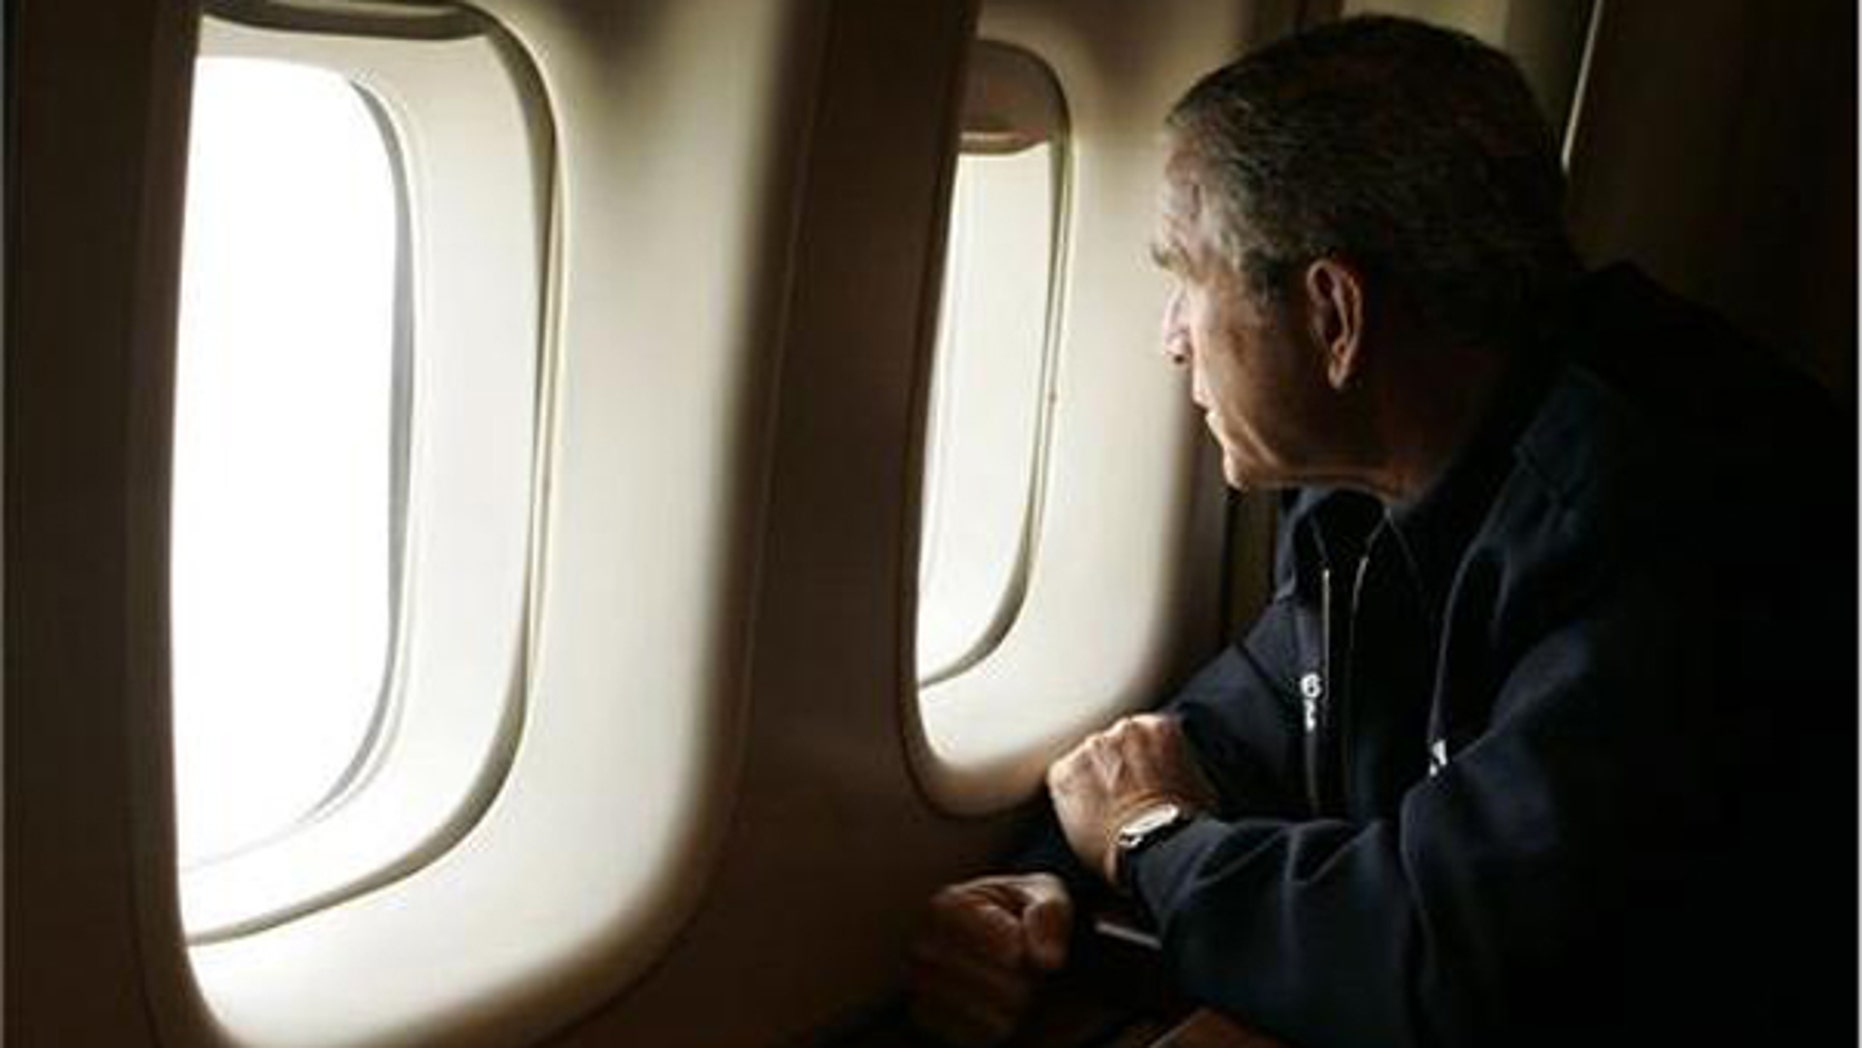 President Bush looks out the window of Air Force One inspecting damage from Hurricane Katrina while flying over New Orleans en route back to the White House. (AP)